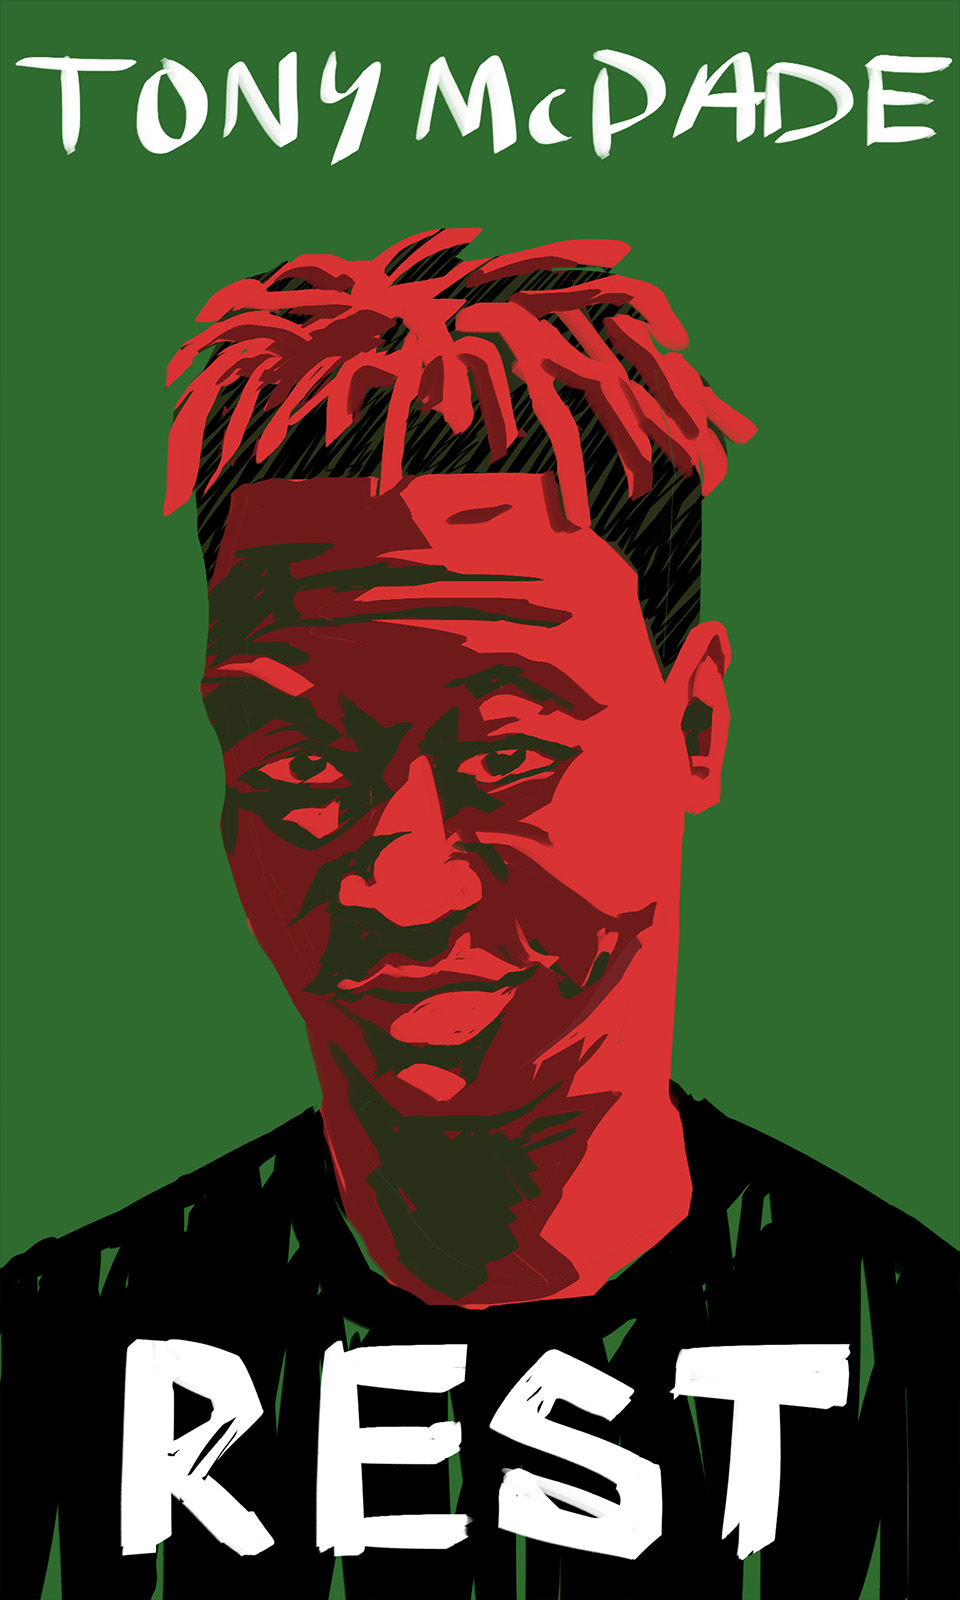 First portrait in the Rest in Power triptych. Tony McDade is rendered in red, green, and black on a green background.. Top text is his name, bottom text reads 'Rest' in a handwritten typeface.